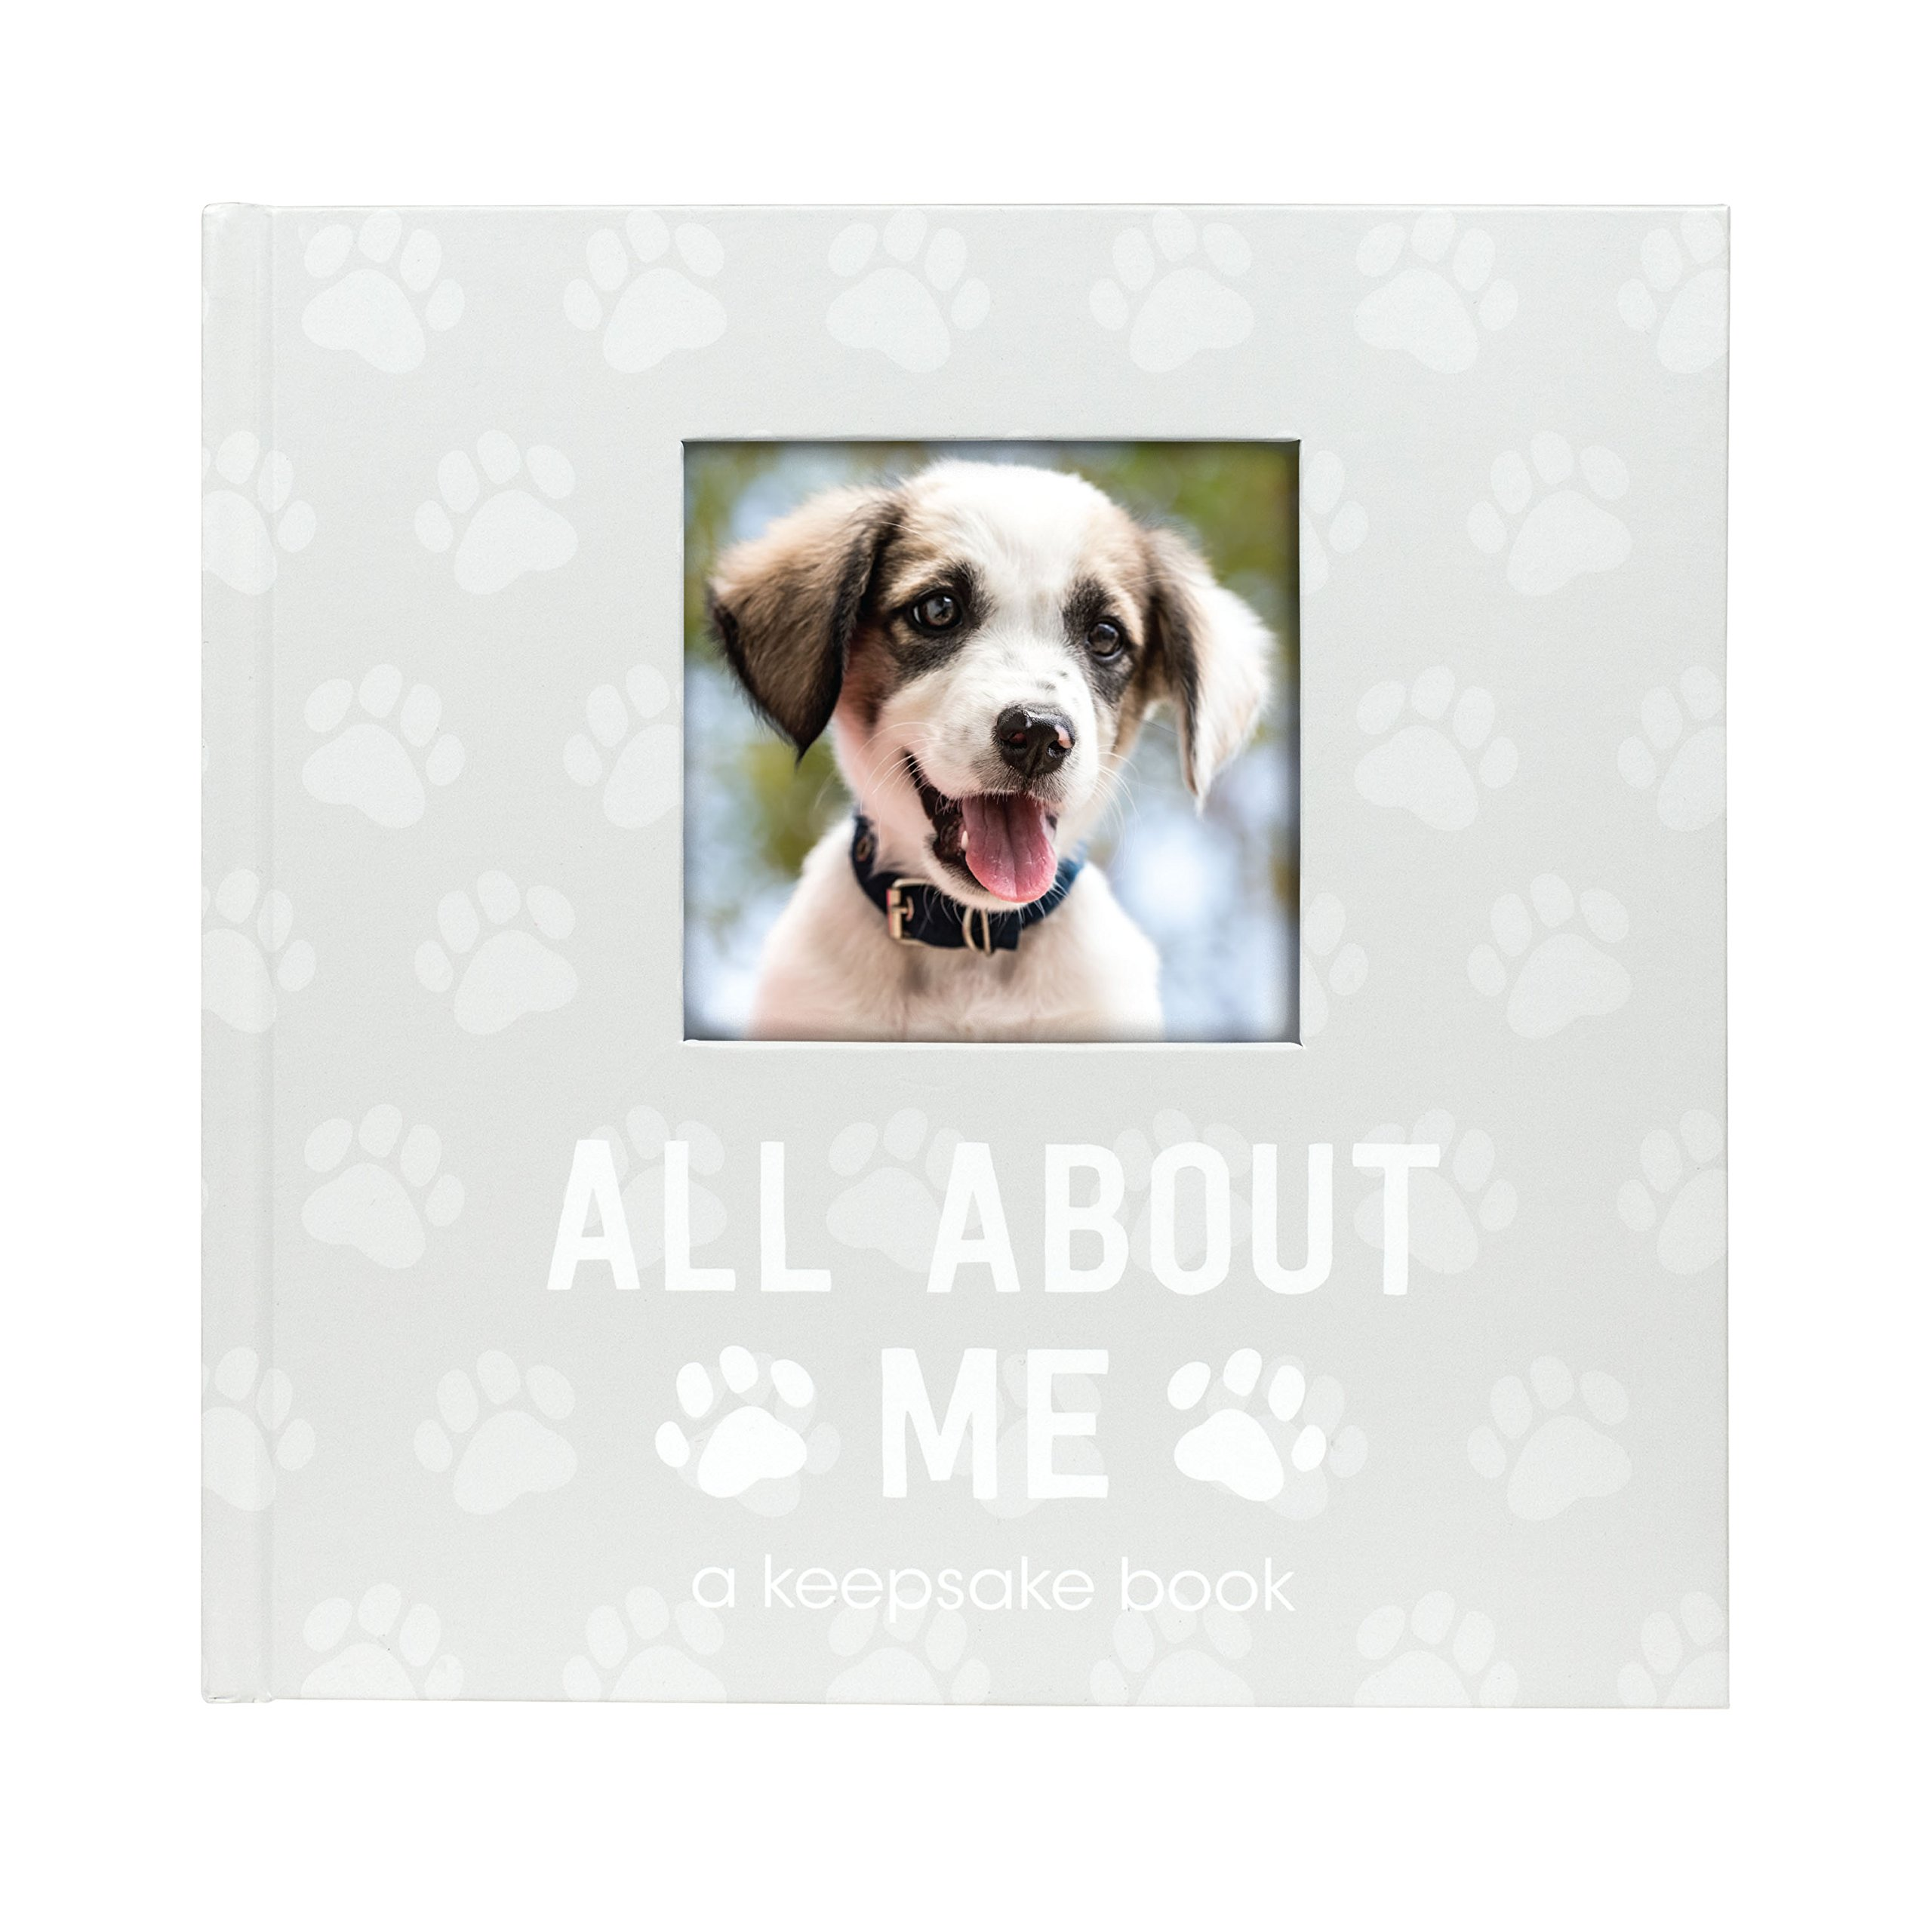 Pearhead Pet Keepsake Photo Album, Perfect Keepsake Memory Book Gift for New Puppy Pet Owners by Pearhead